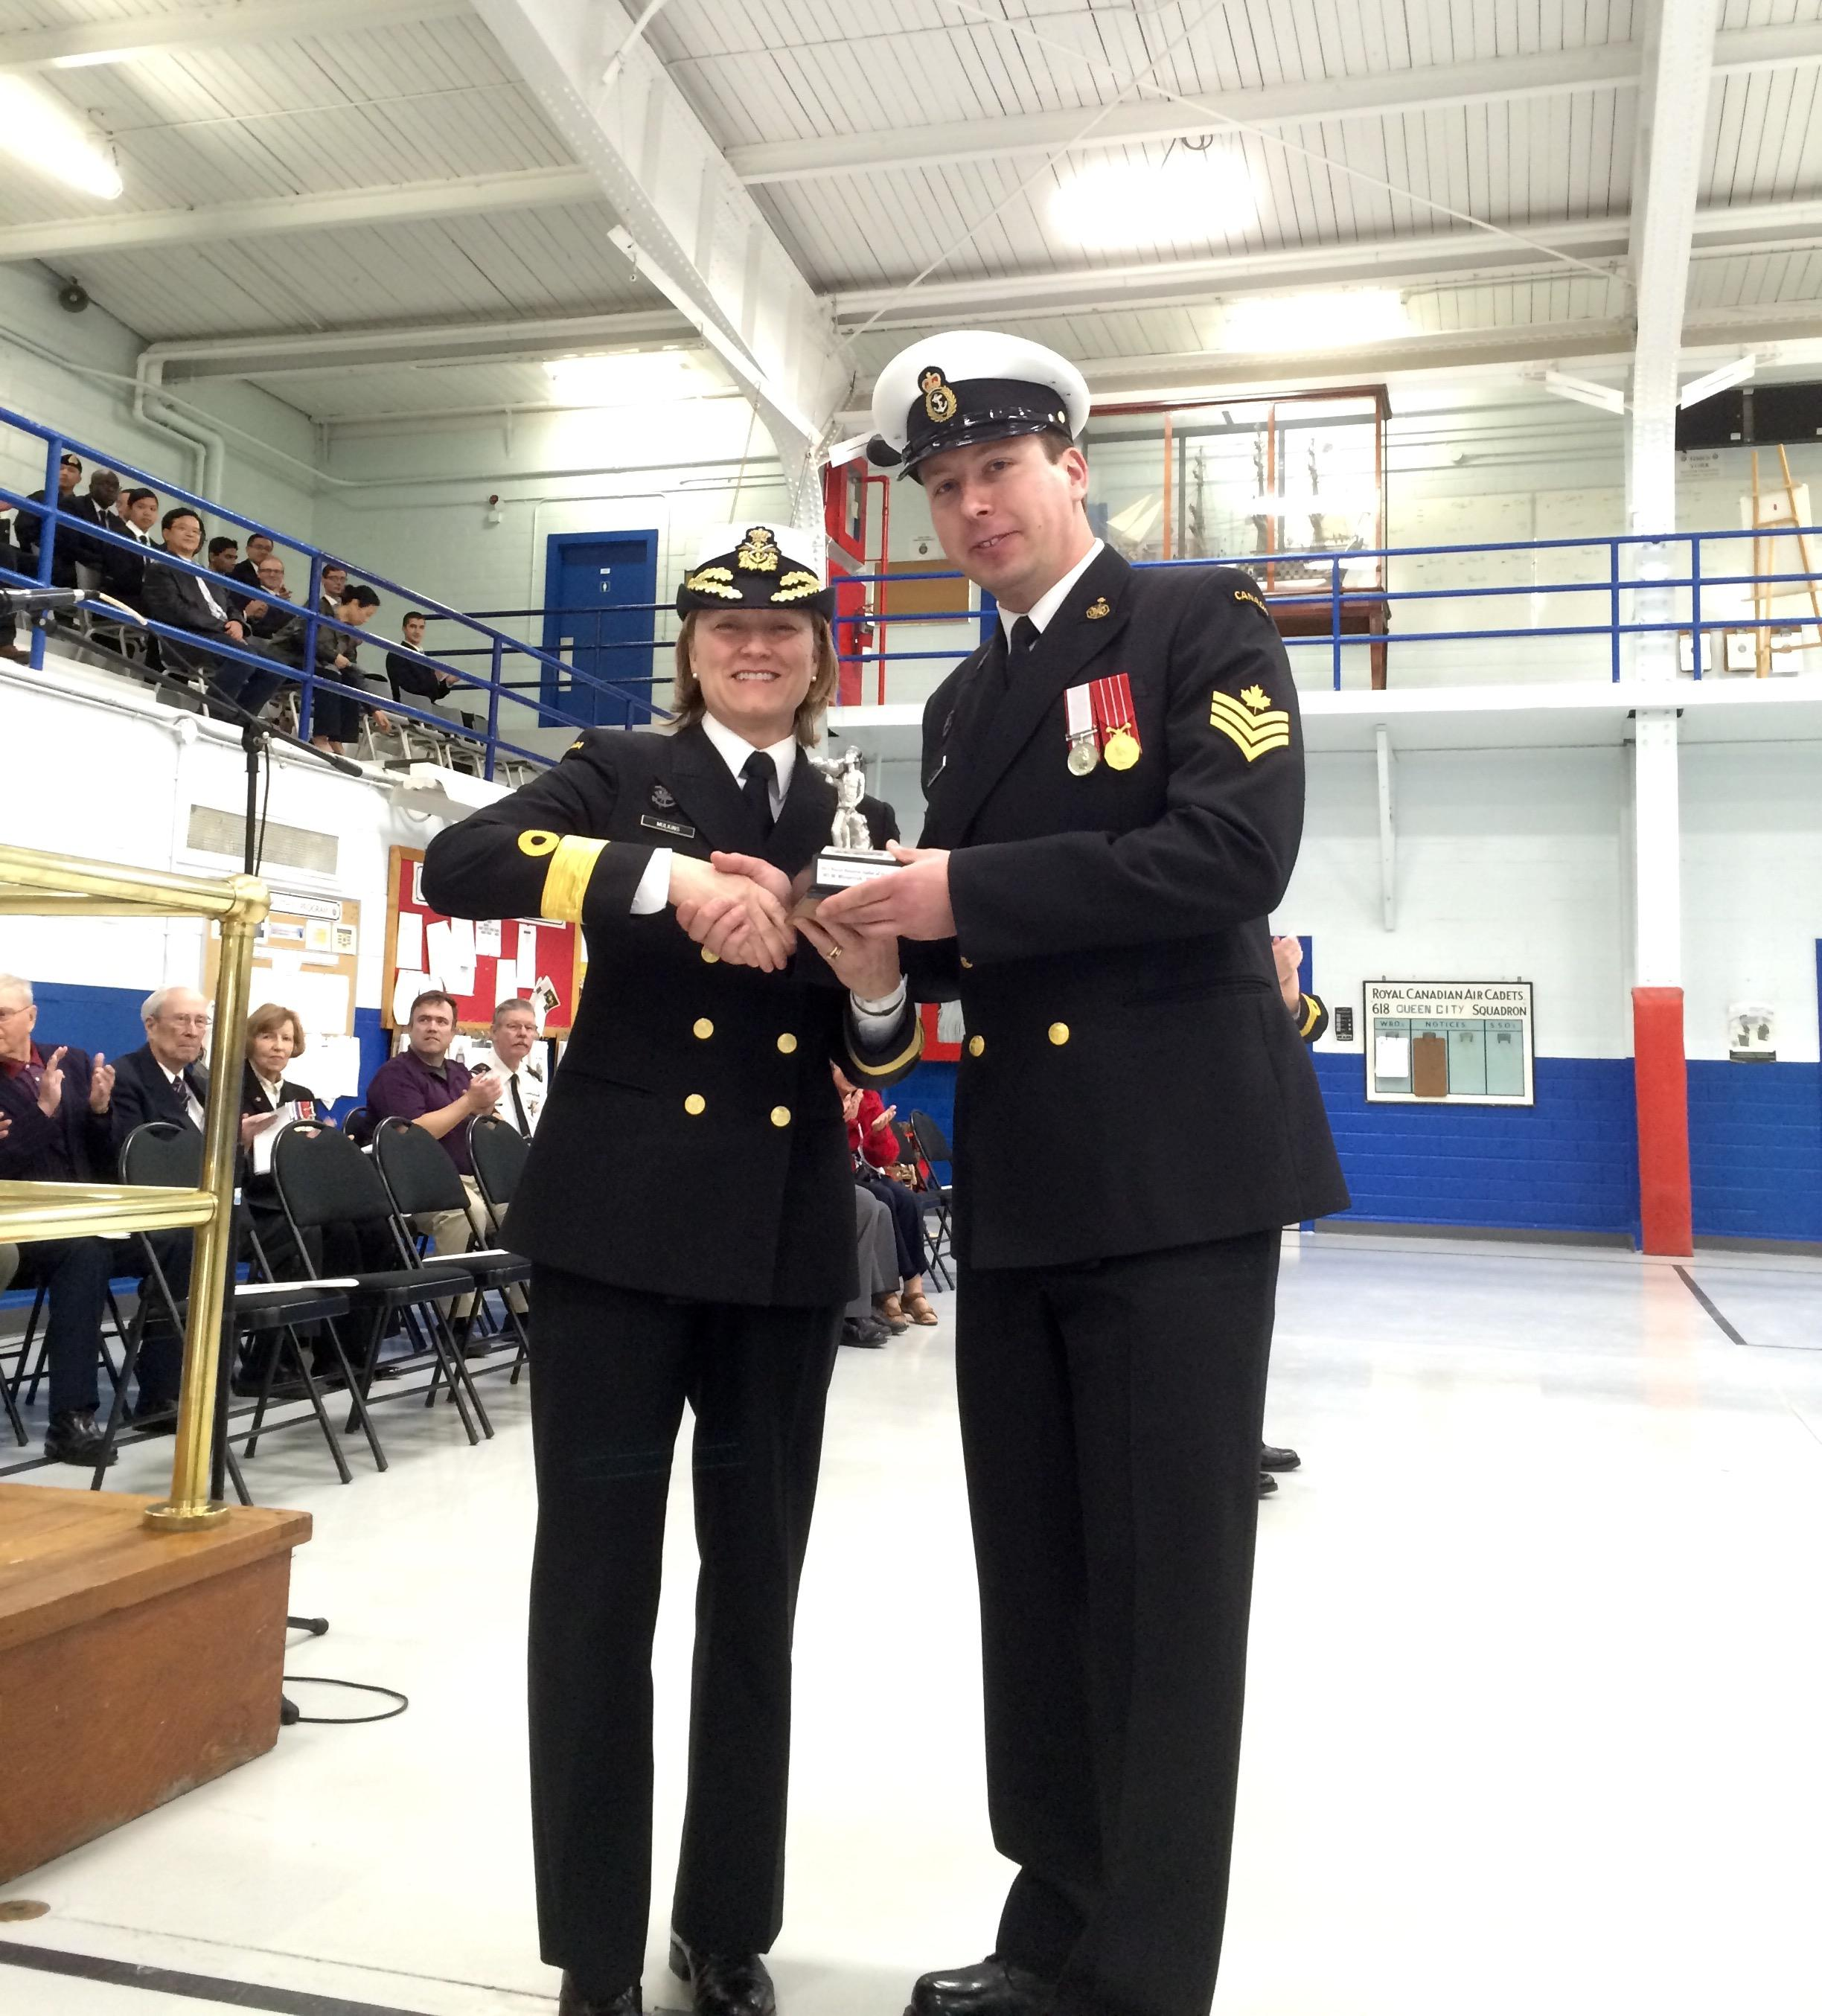 Commodore Marta Mulkins, Commander Naval Reserve, presents Petty Officer 2nd Class Michael Mlynarczyk with a replica of the Naval Reserve Sailor of the Year trophy